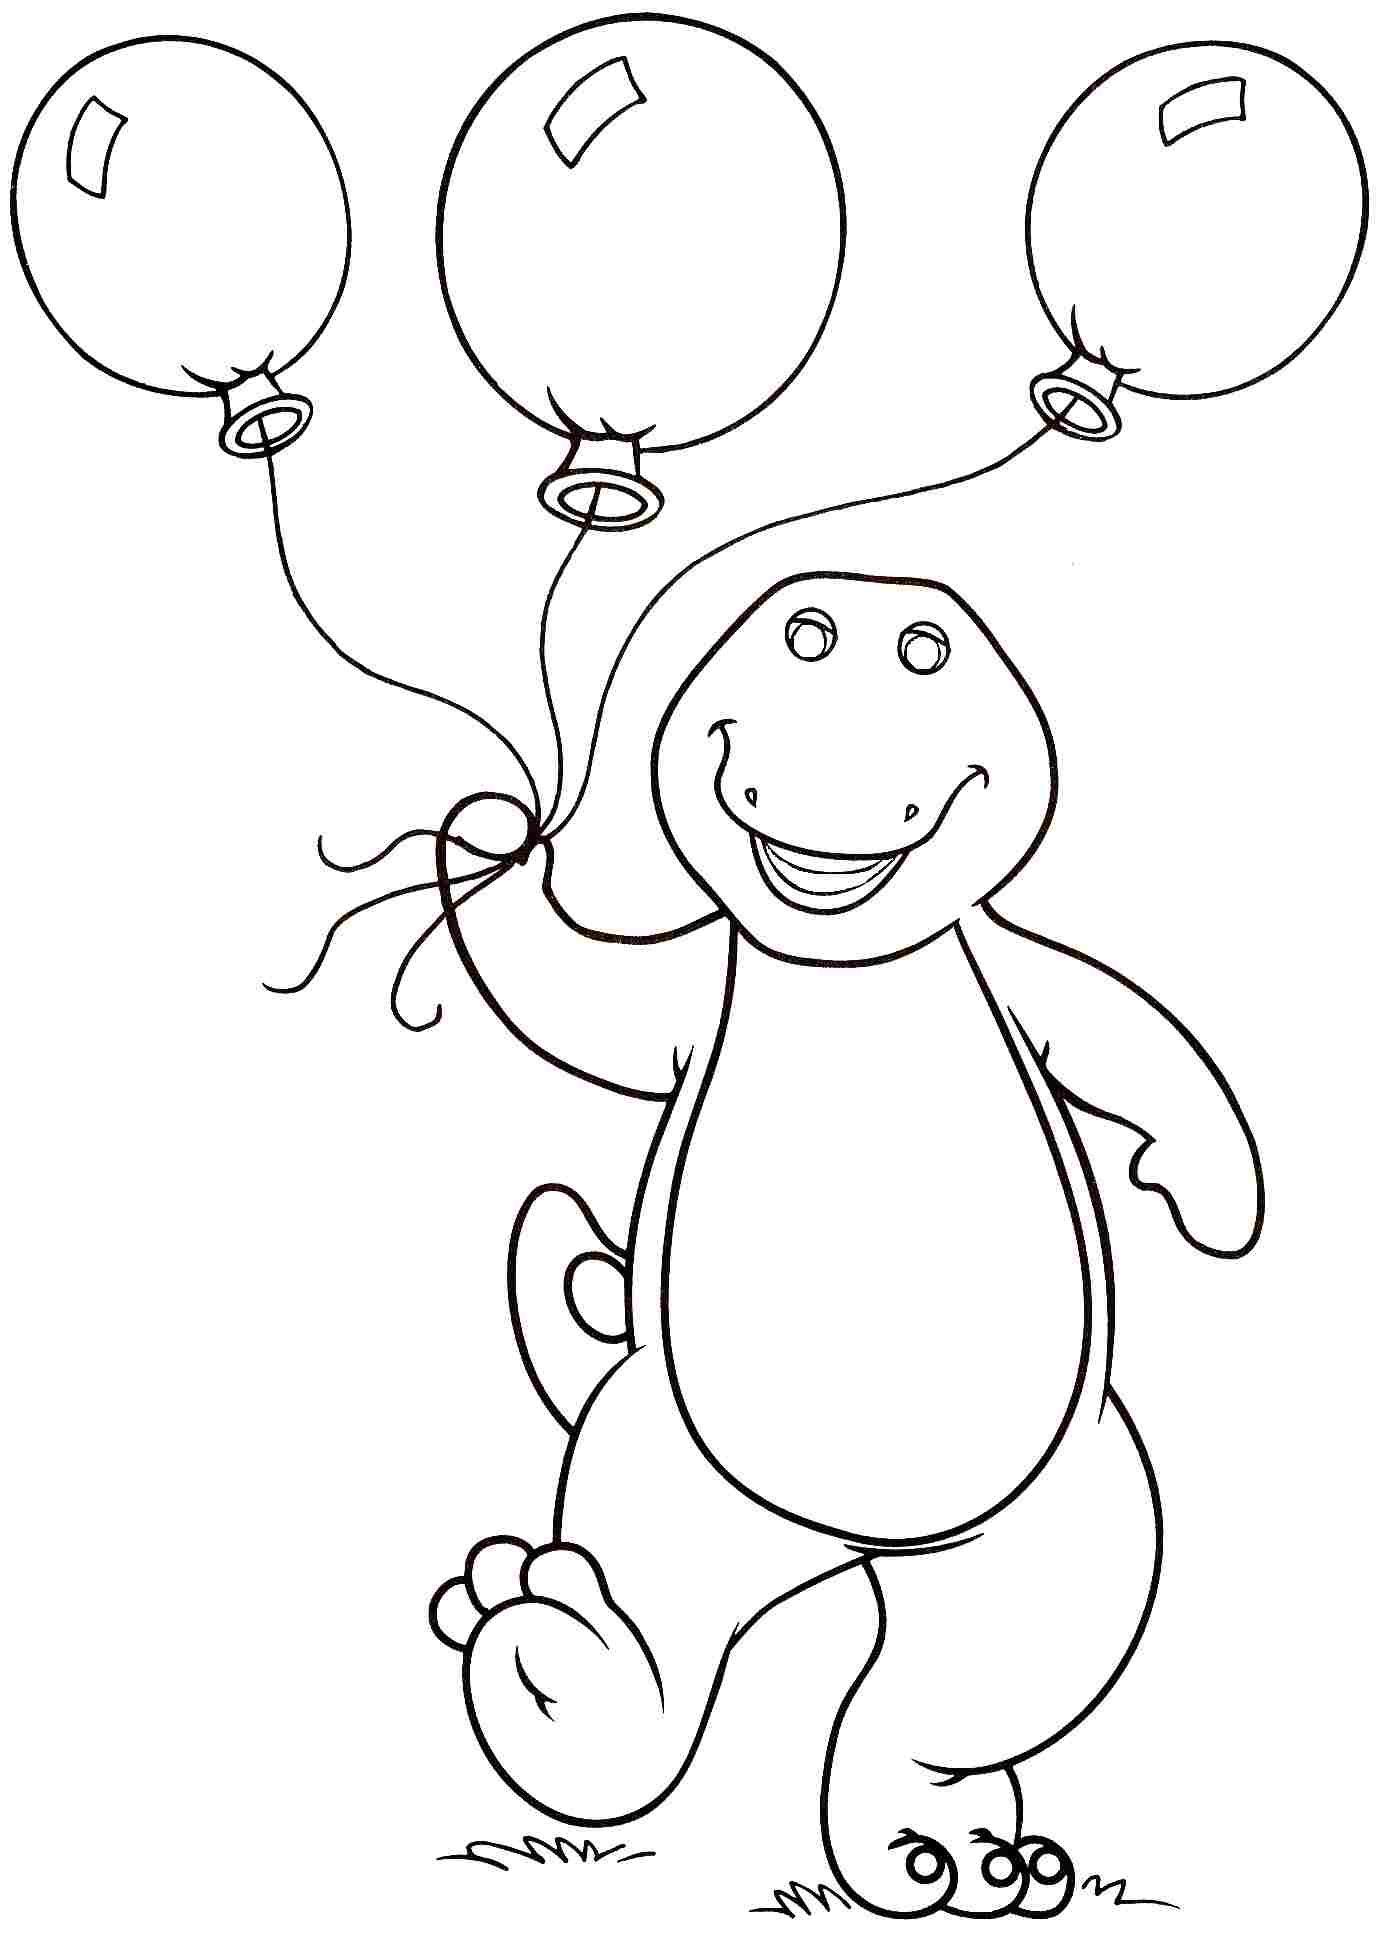 Barney Carrying Balloons Barney Coloring Pages Pinterest